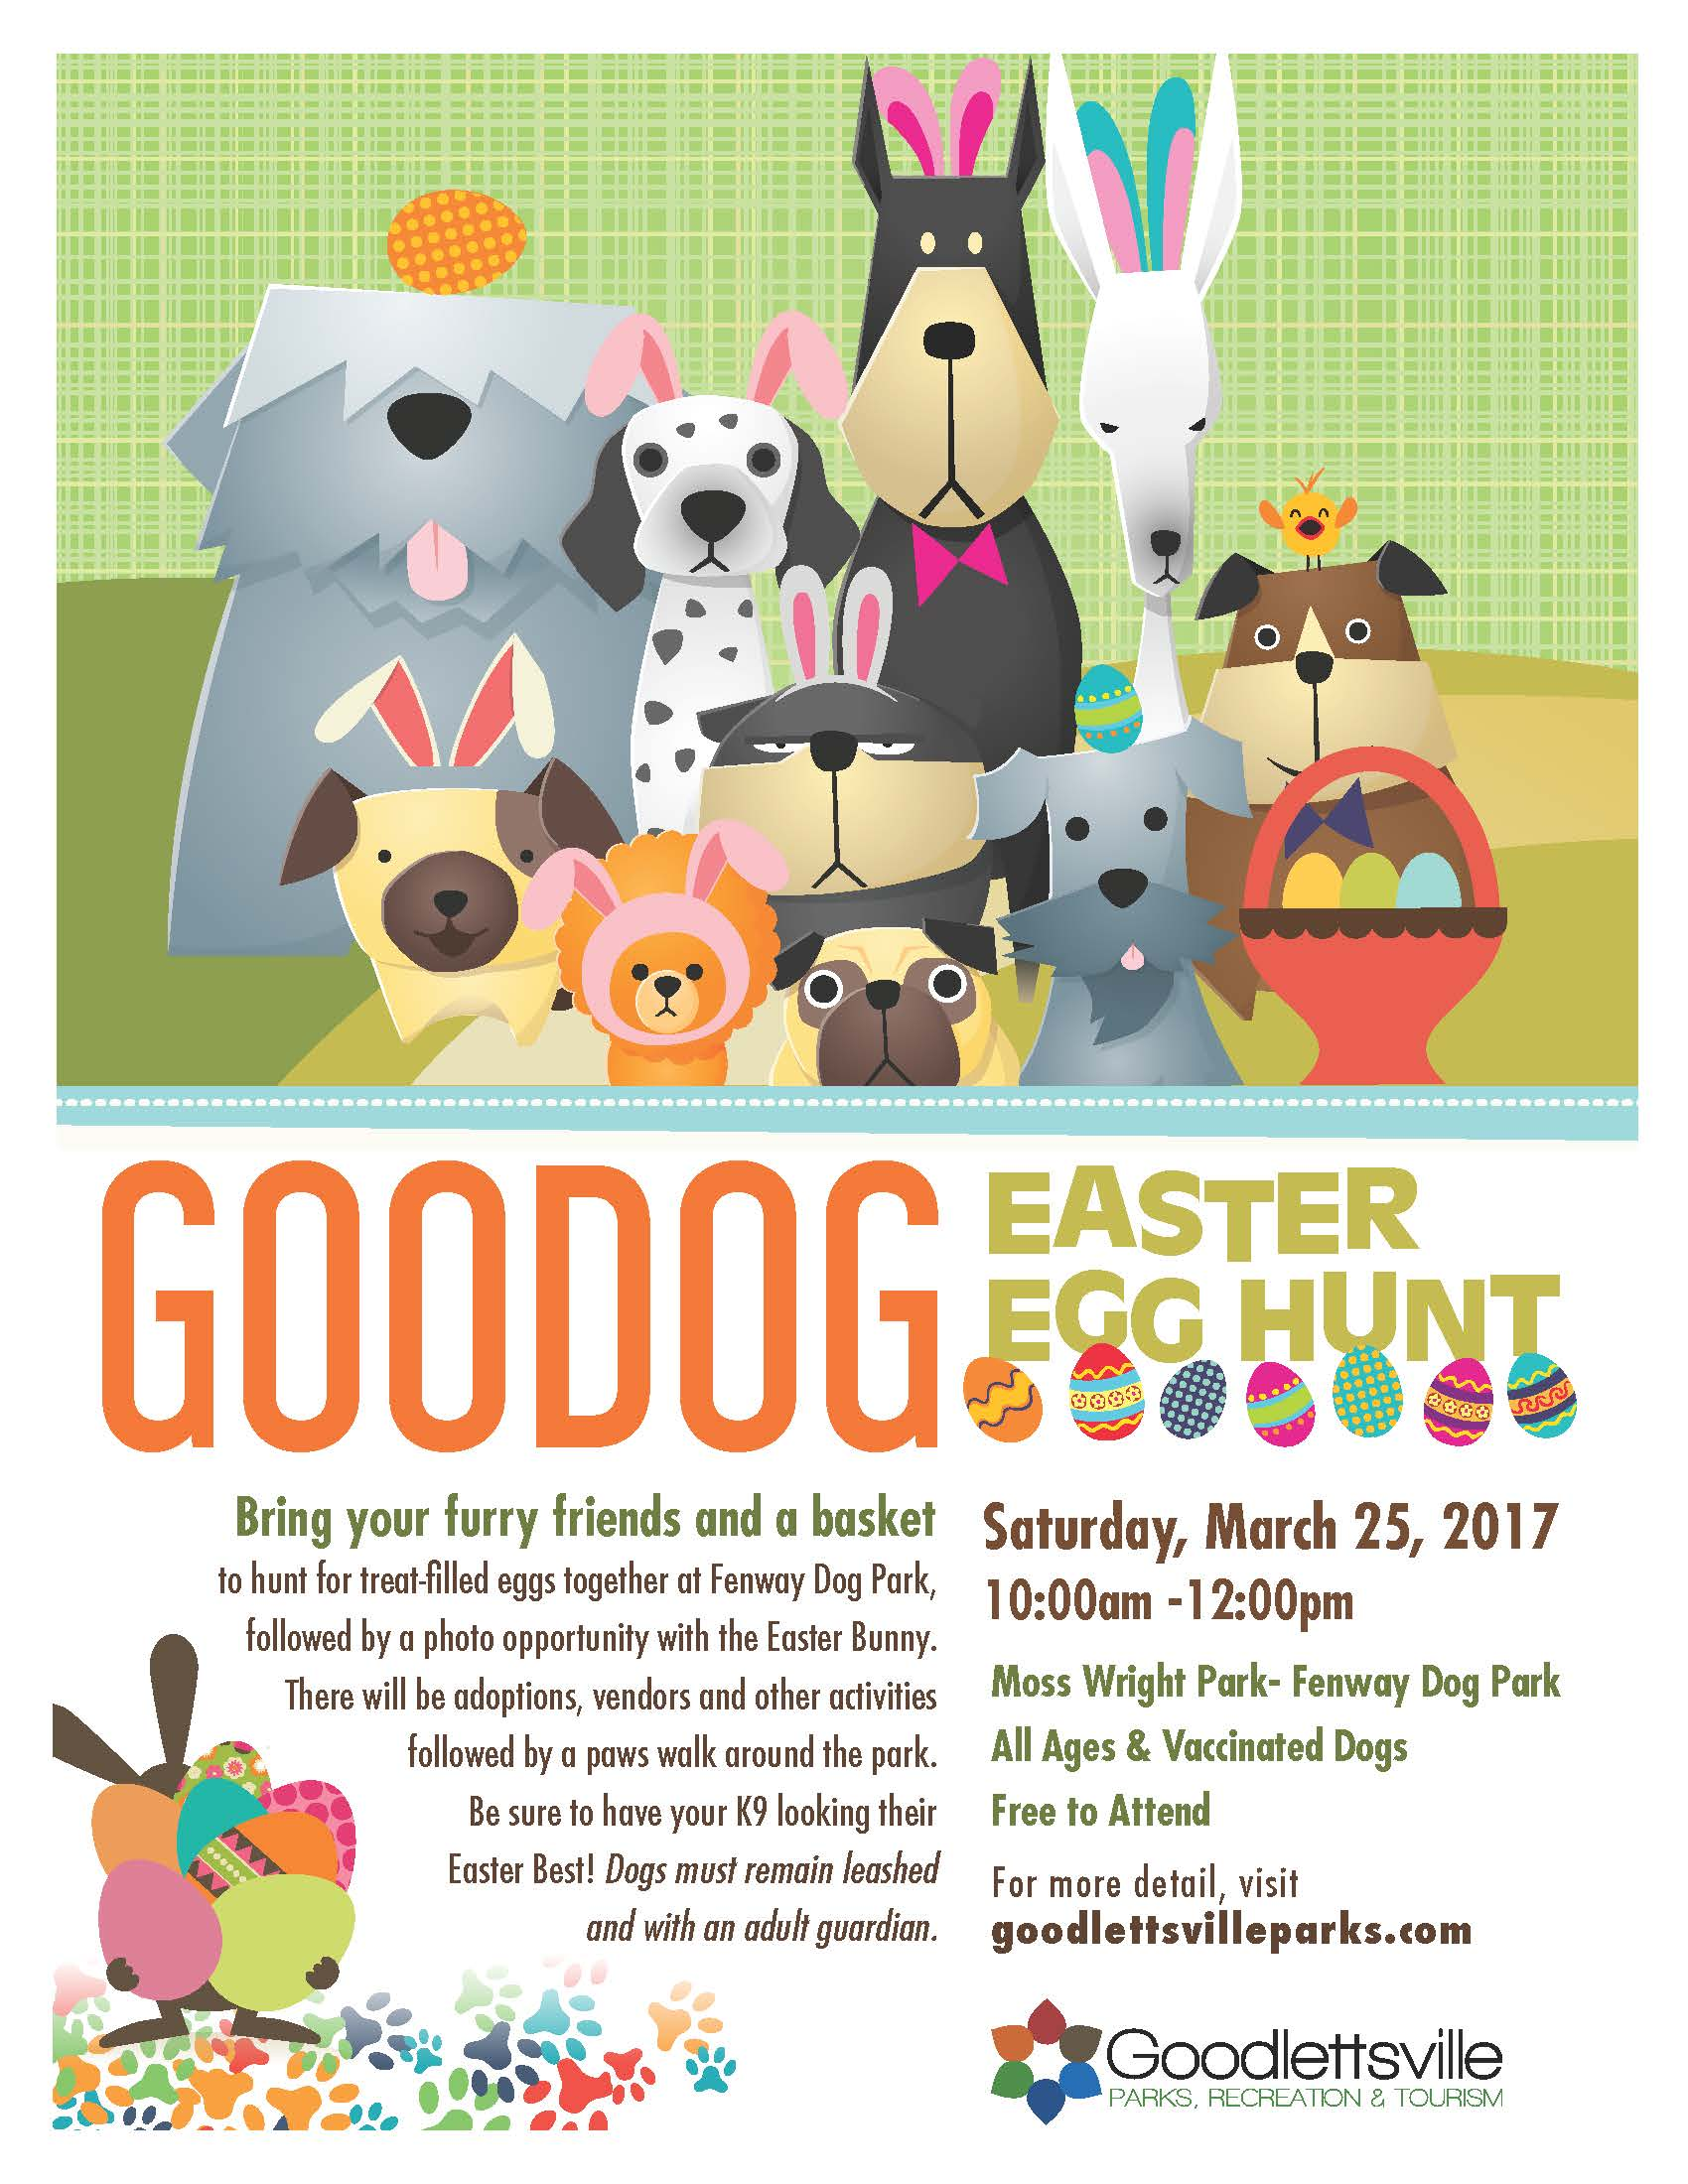 GooDOG Festival & Easter Egg Hunt @ Moss-Wright Park | Goodlettsville | Tennessee | United States